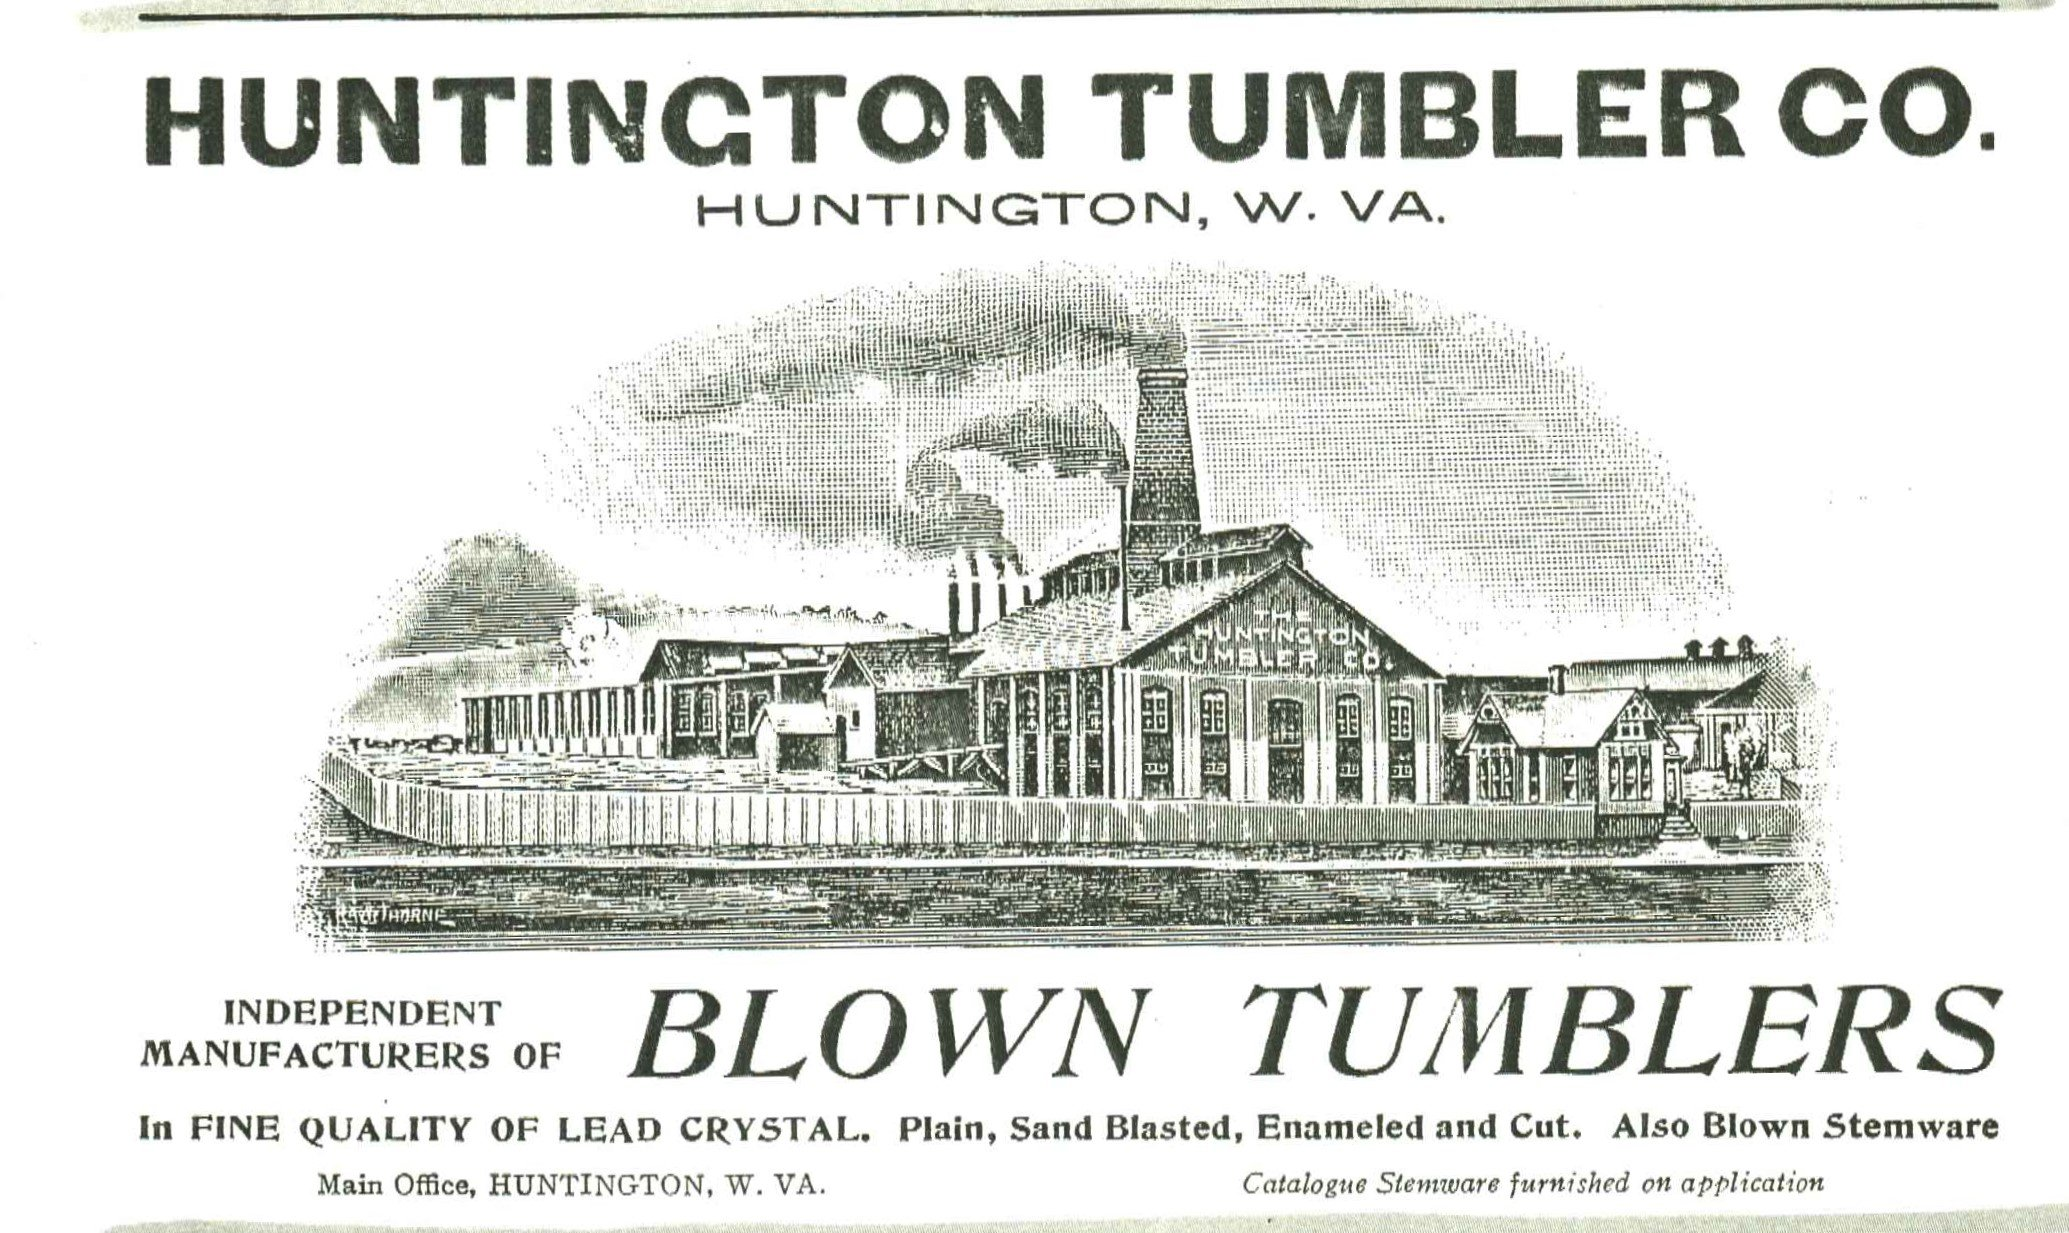 Advertisement for the Huntington Tumbler Company from the early 1900s. Image courtesy of the West Huntington Public Library.